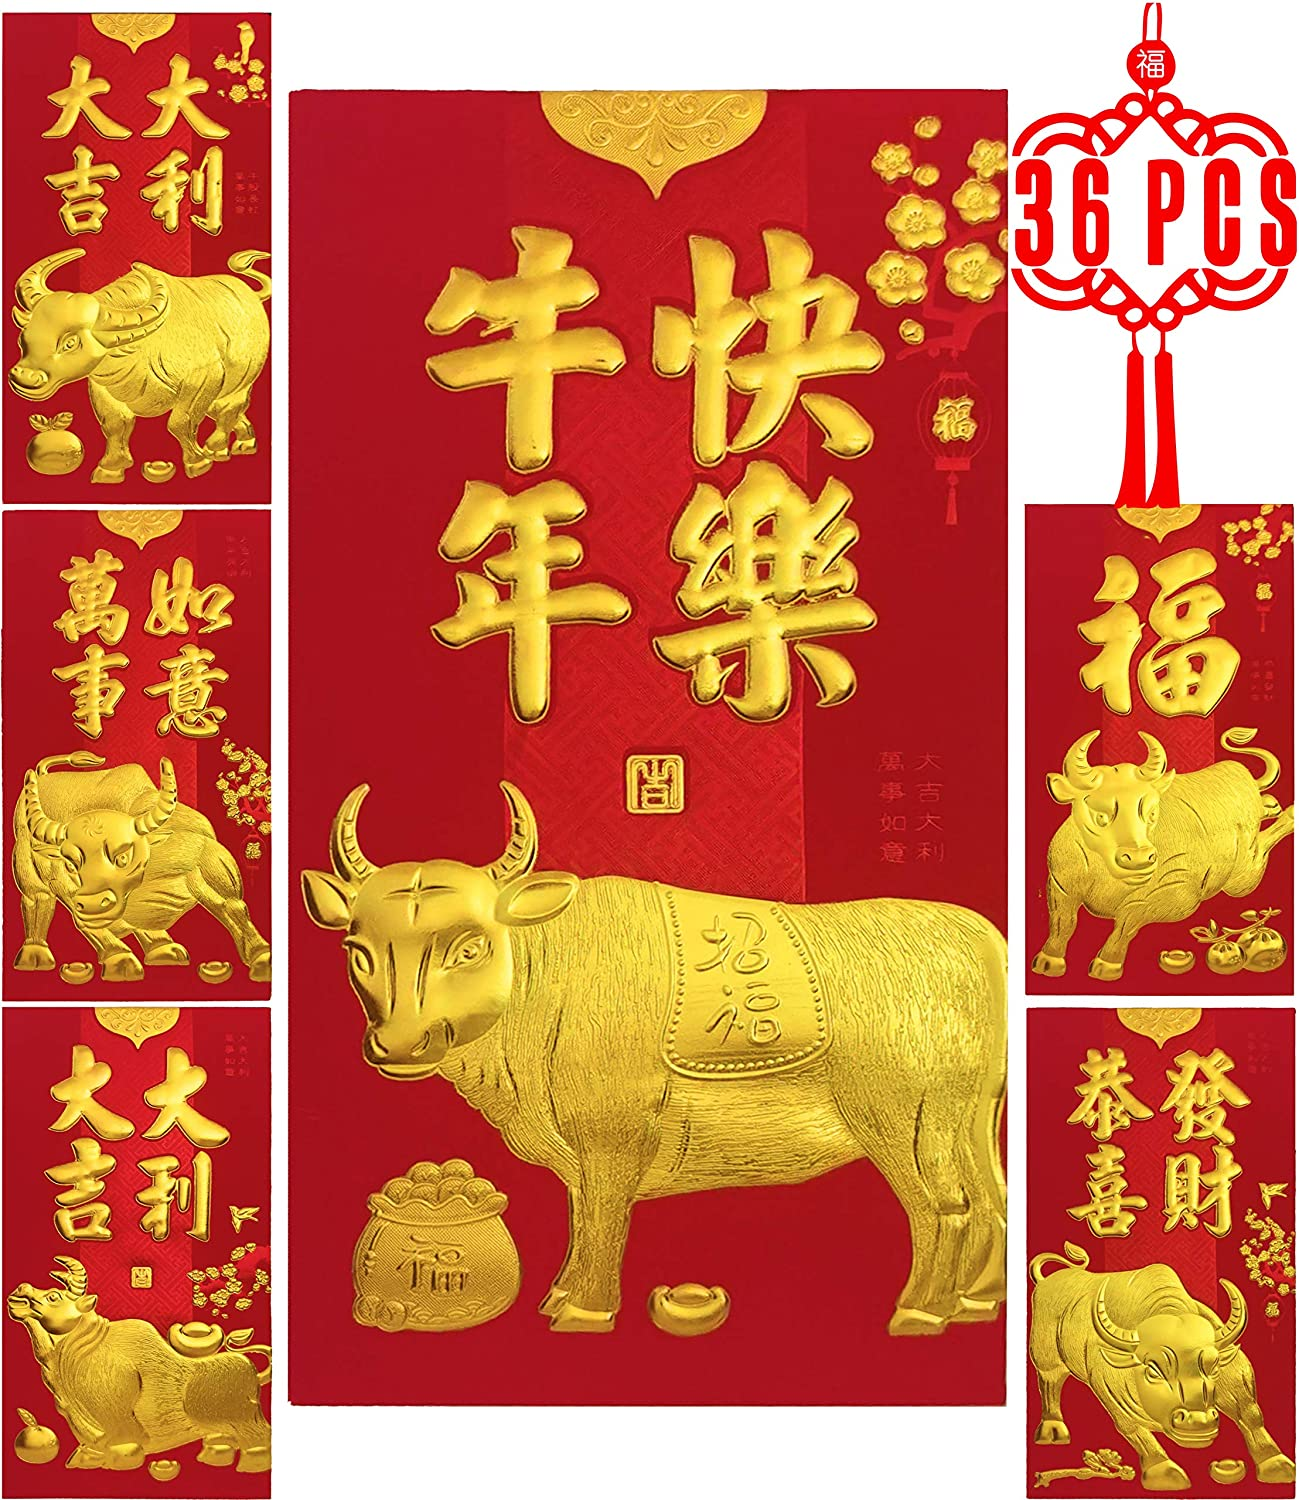 ELLZK Chinese Red Envelopes Lucky Money Envelopes 2021 Chinese New Year Ox Year Envelope Large (6 Patterns 36 Pcs) Gold Foil